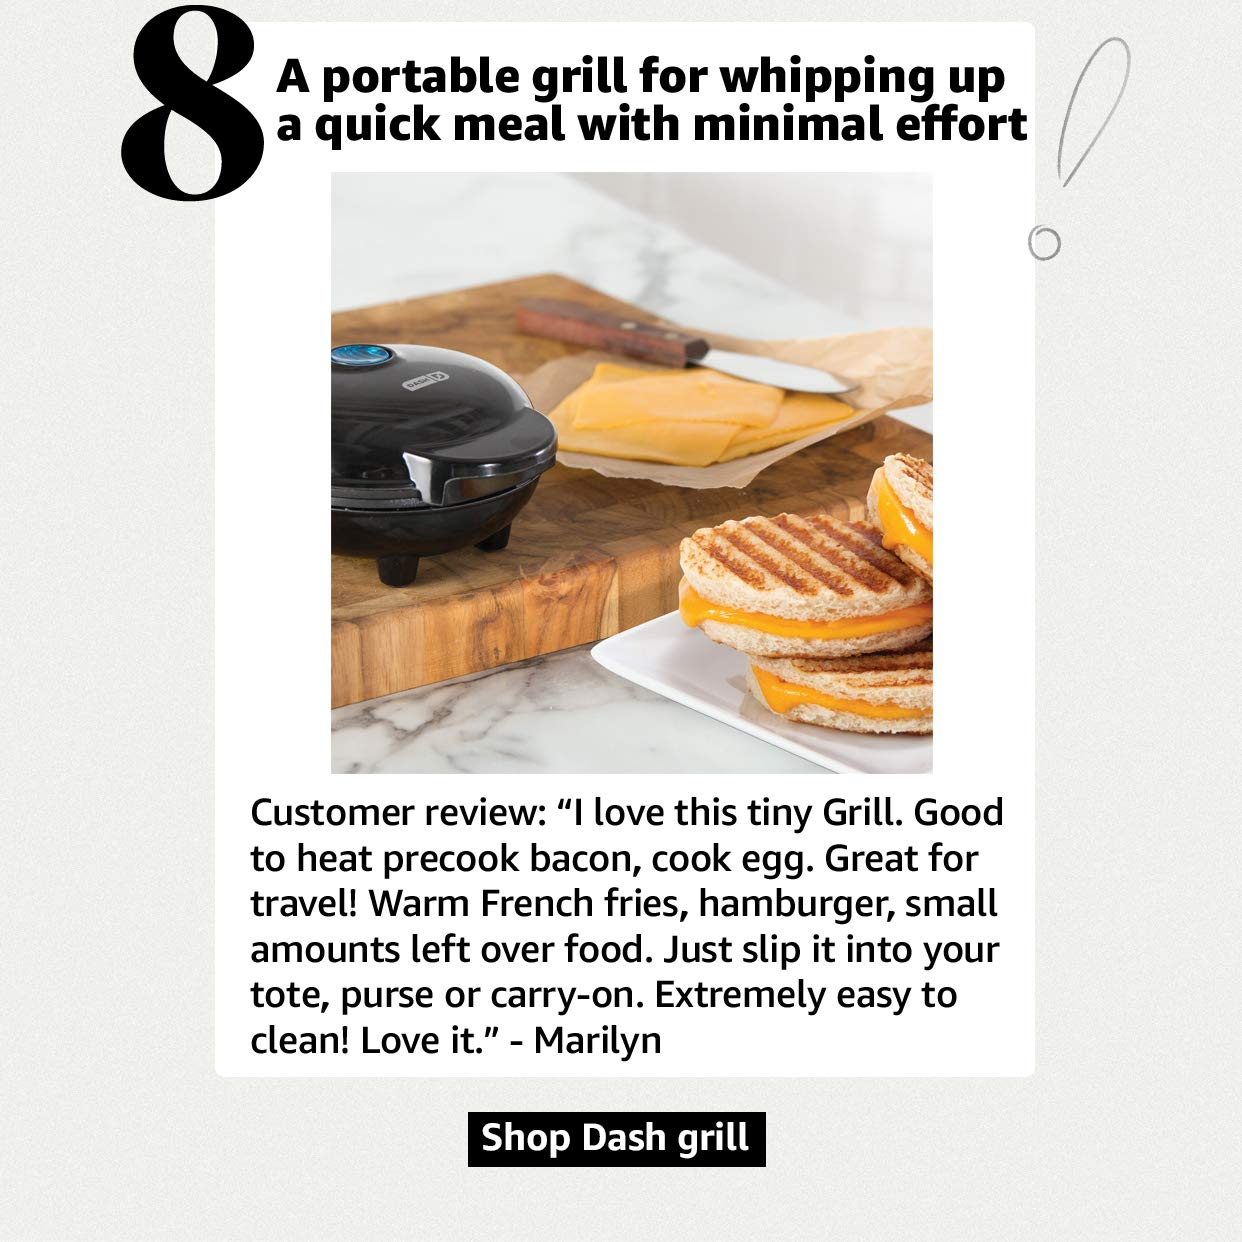 A portable grill for whipping up a quick meal